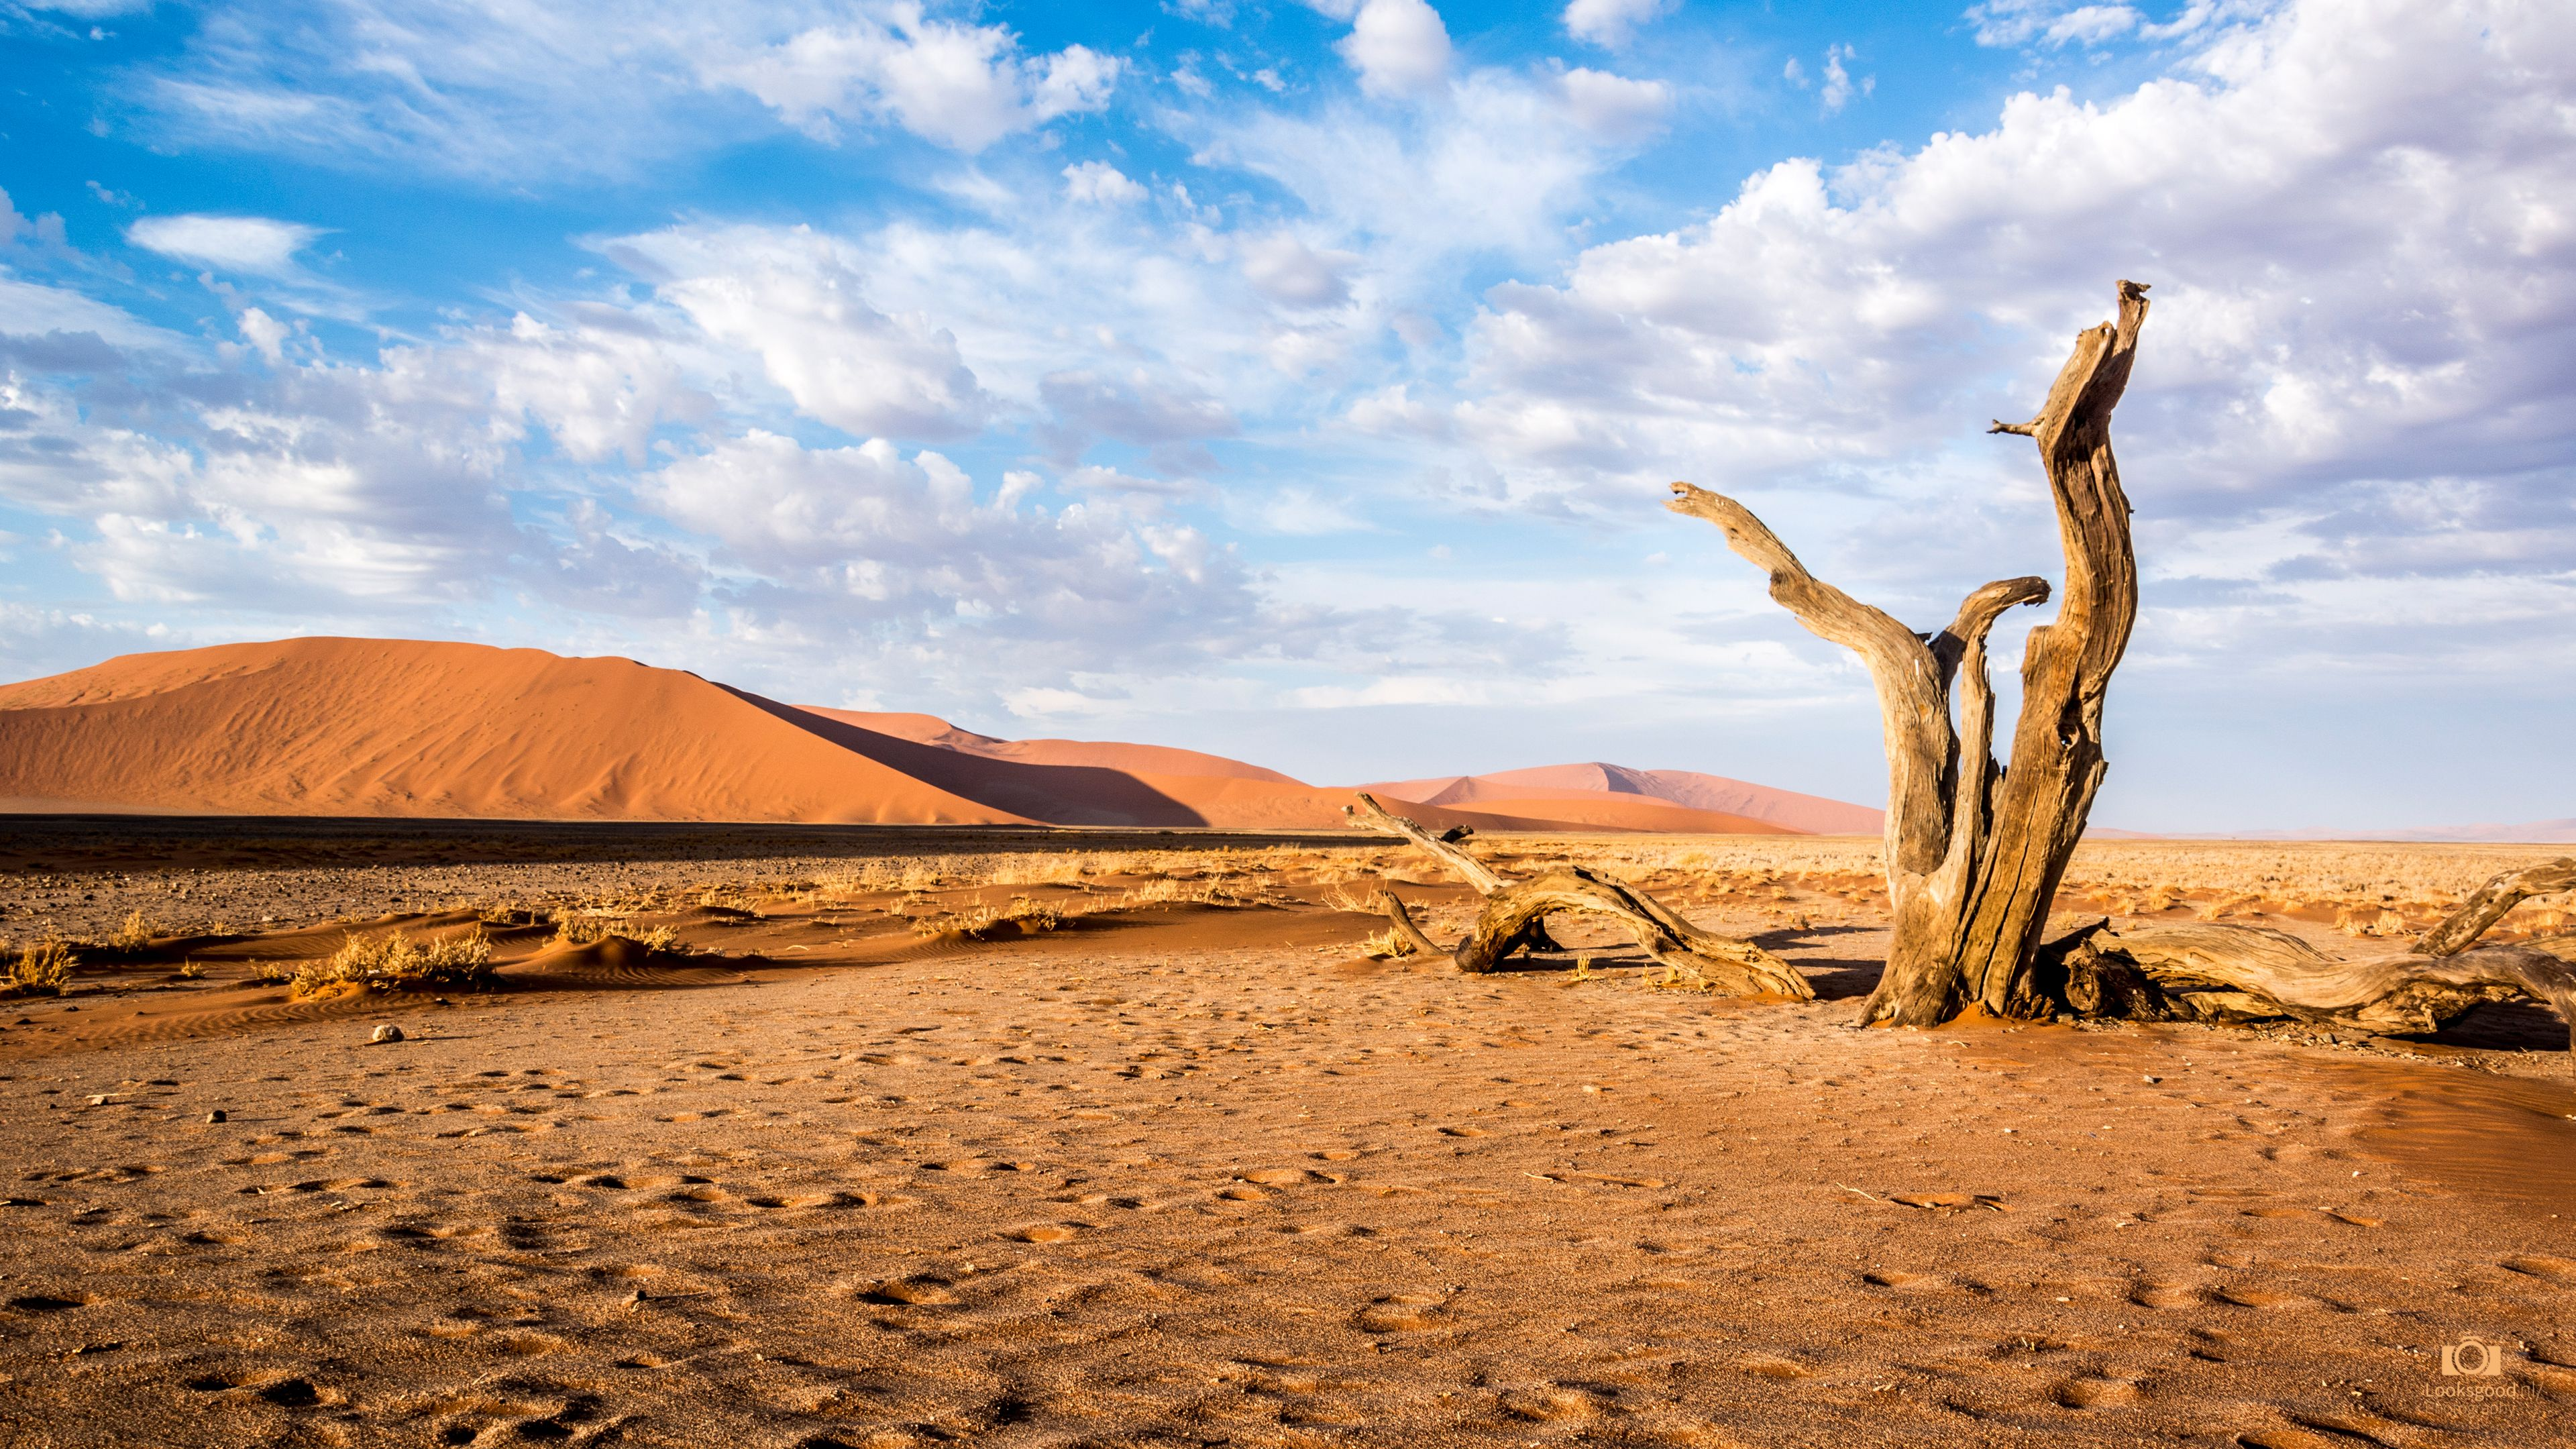 Sossusvlei Namibia Desert 4K Wallpaper / Desktop Background - Free ...